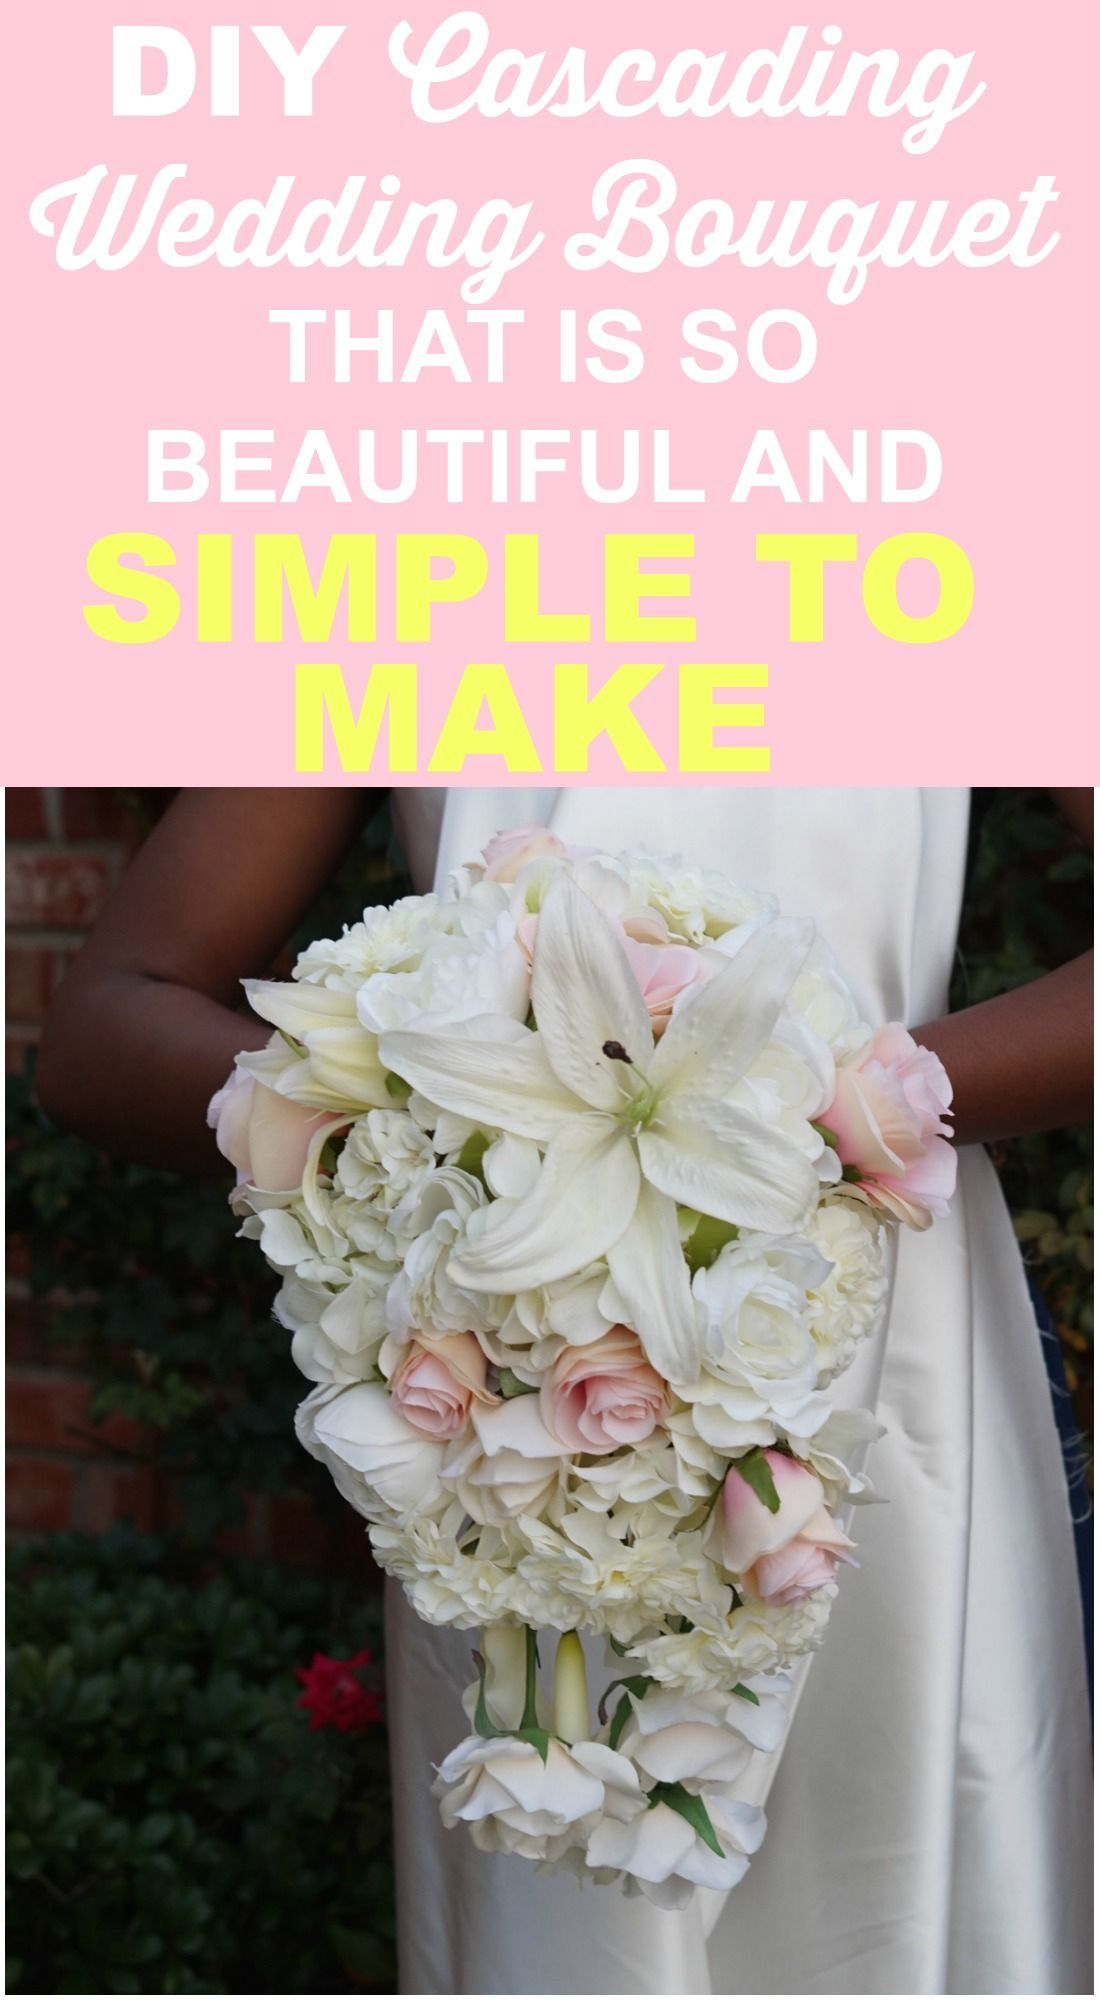 Simple to Make Beautiful DIY Cascading Wedding Bouquet! in